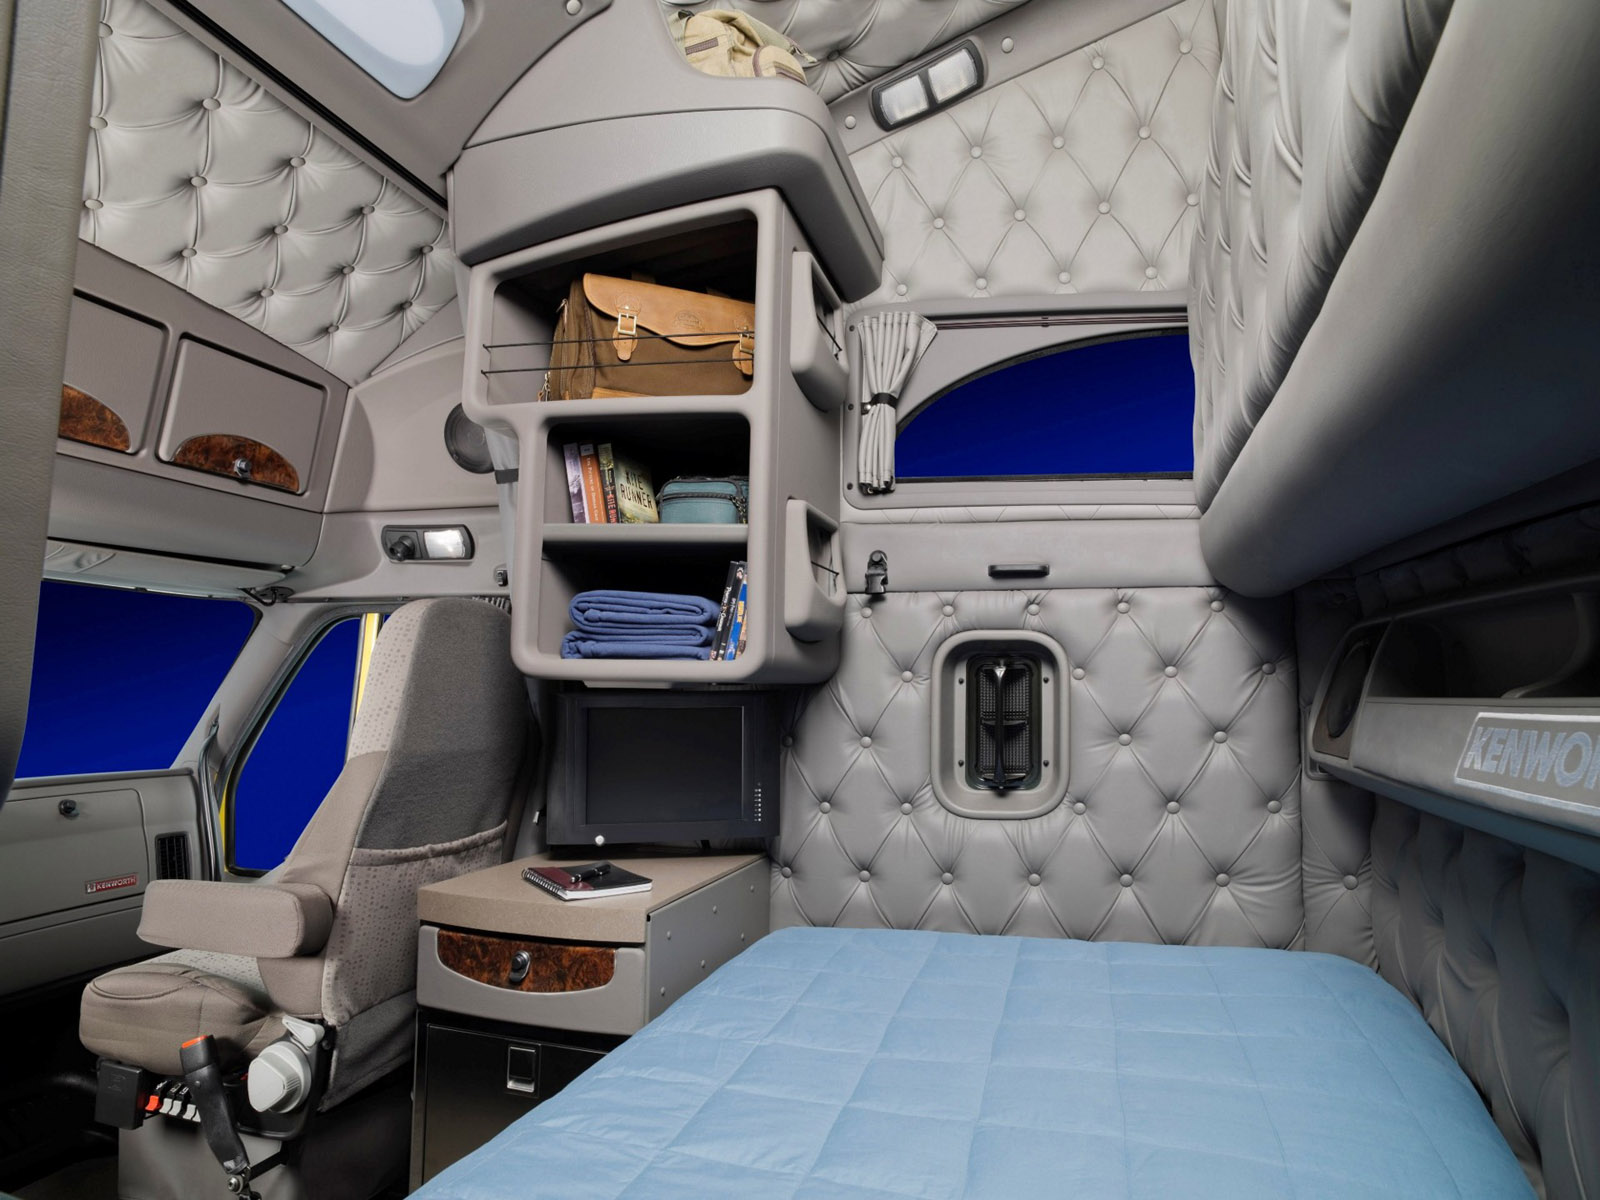 2010 kenworth t700 semi tractor interior f wallpaper for Camion americain interieur cabine